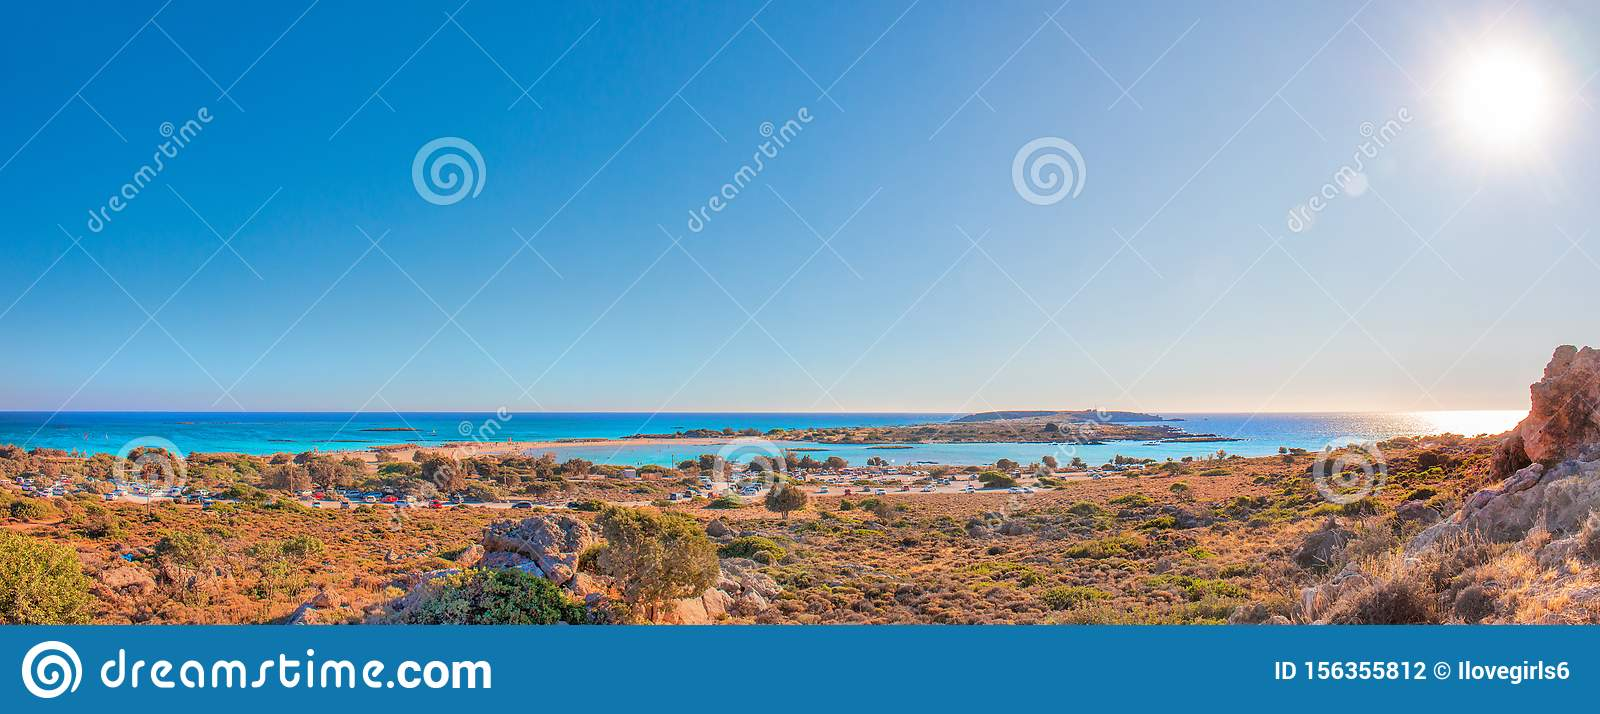 Tropical Sandy Beach With Turquoise Water In Elafonisi